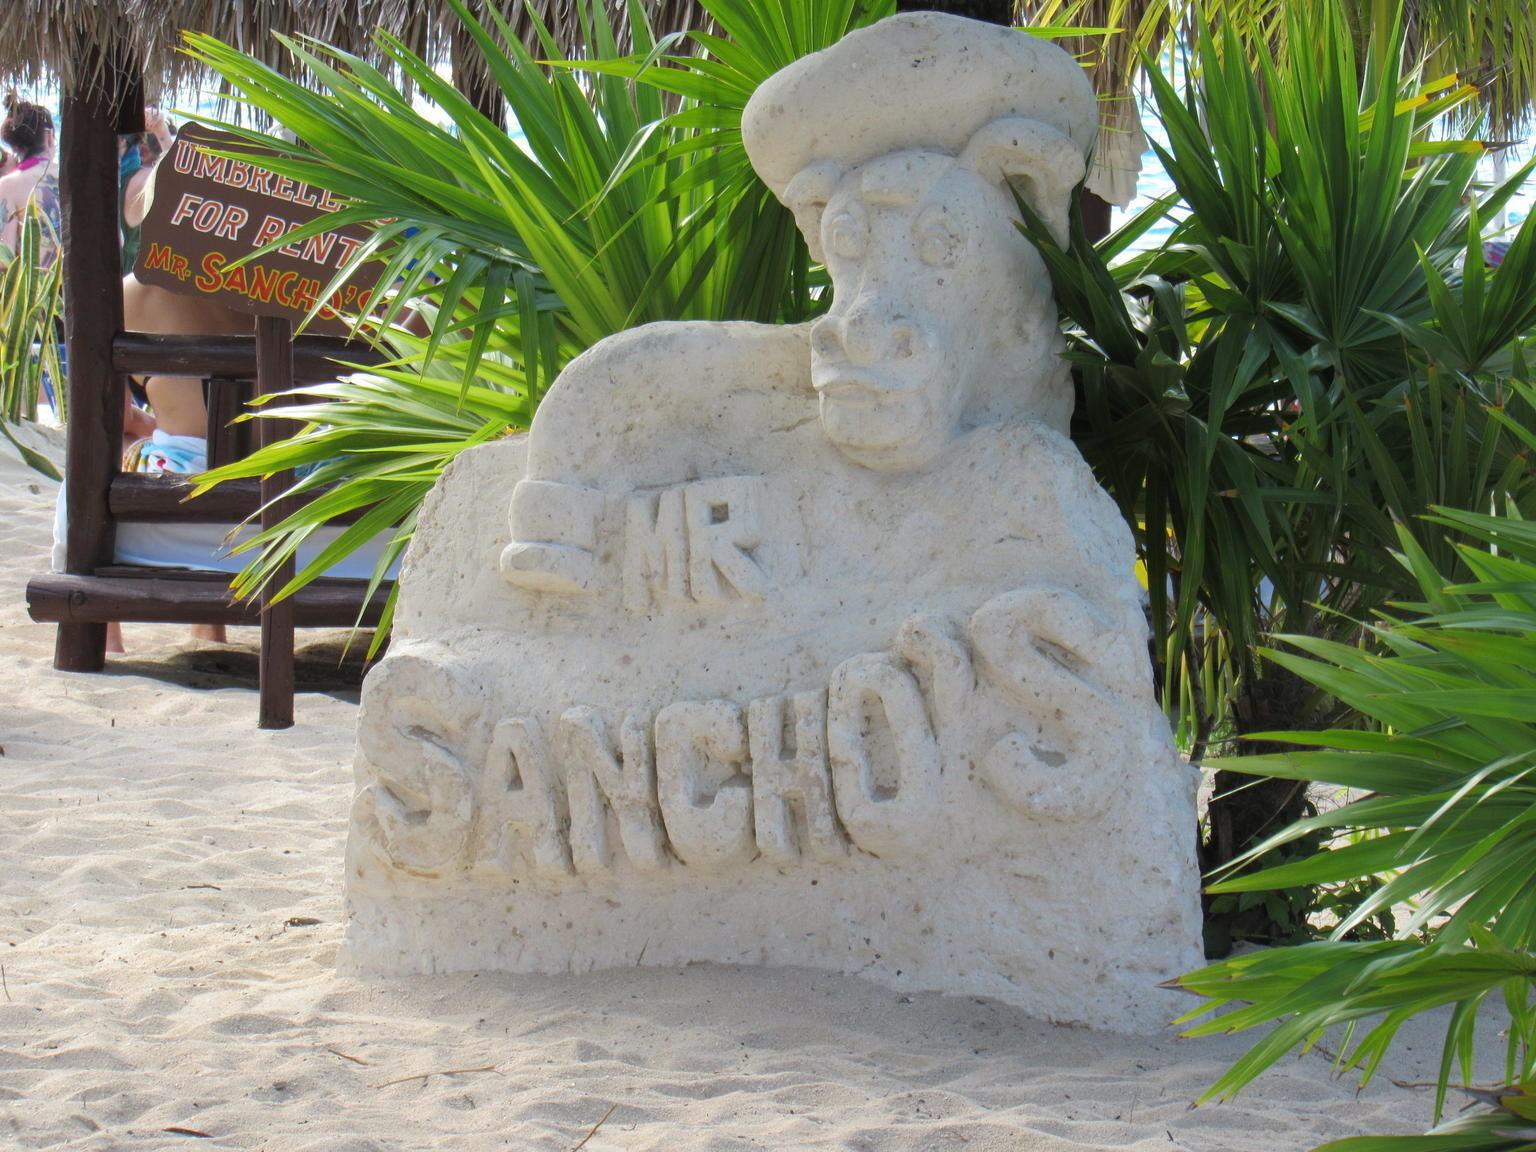 Mr. Sancho's Beach Club All-Inclusive Day Pass